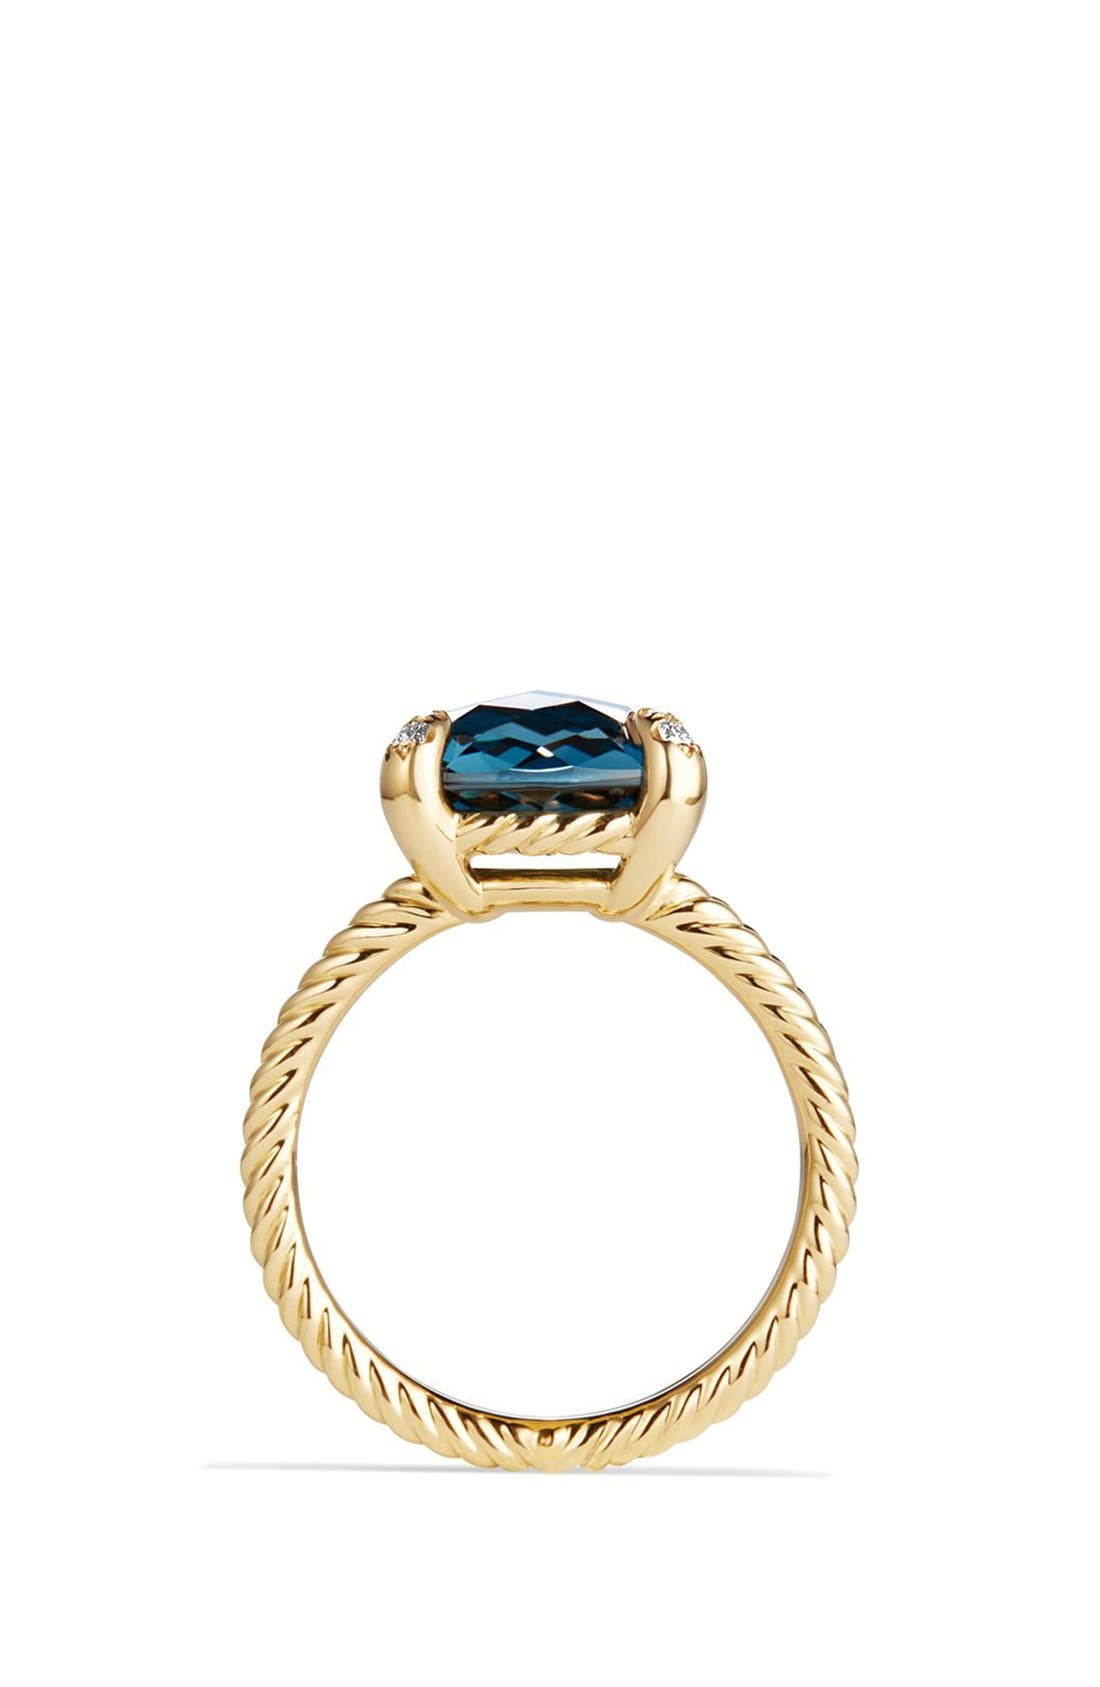 Châtelaine Ring with Hampton Blue Topaz and Diamonds in 18K Gold,                             Alternate thumbnail 4, color,                             HAMPTON BLUE TOPAZ